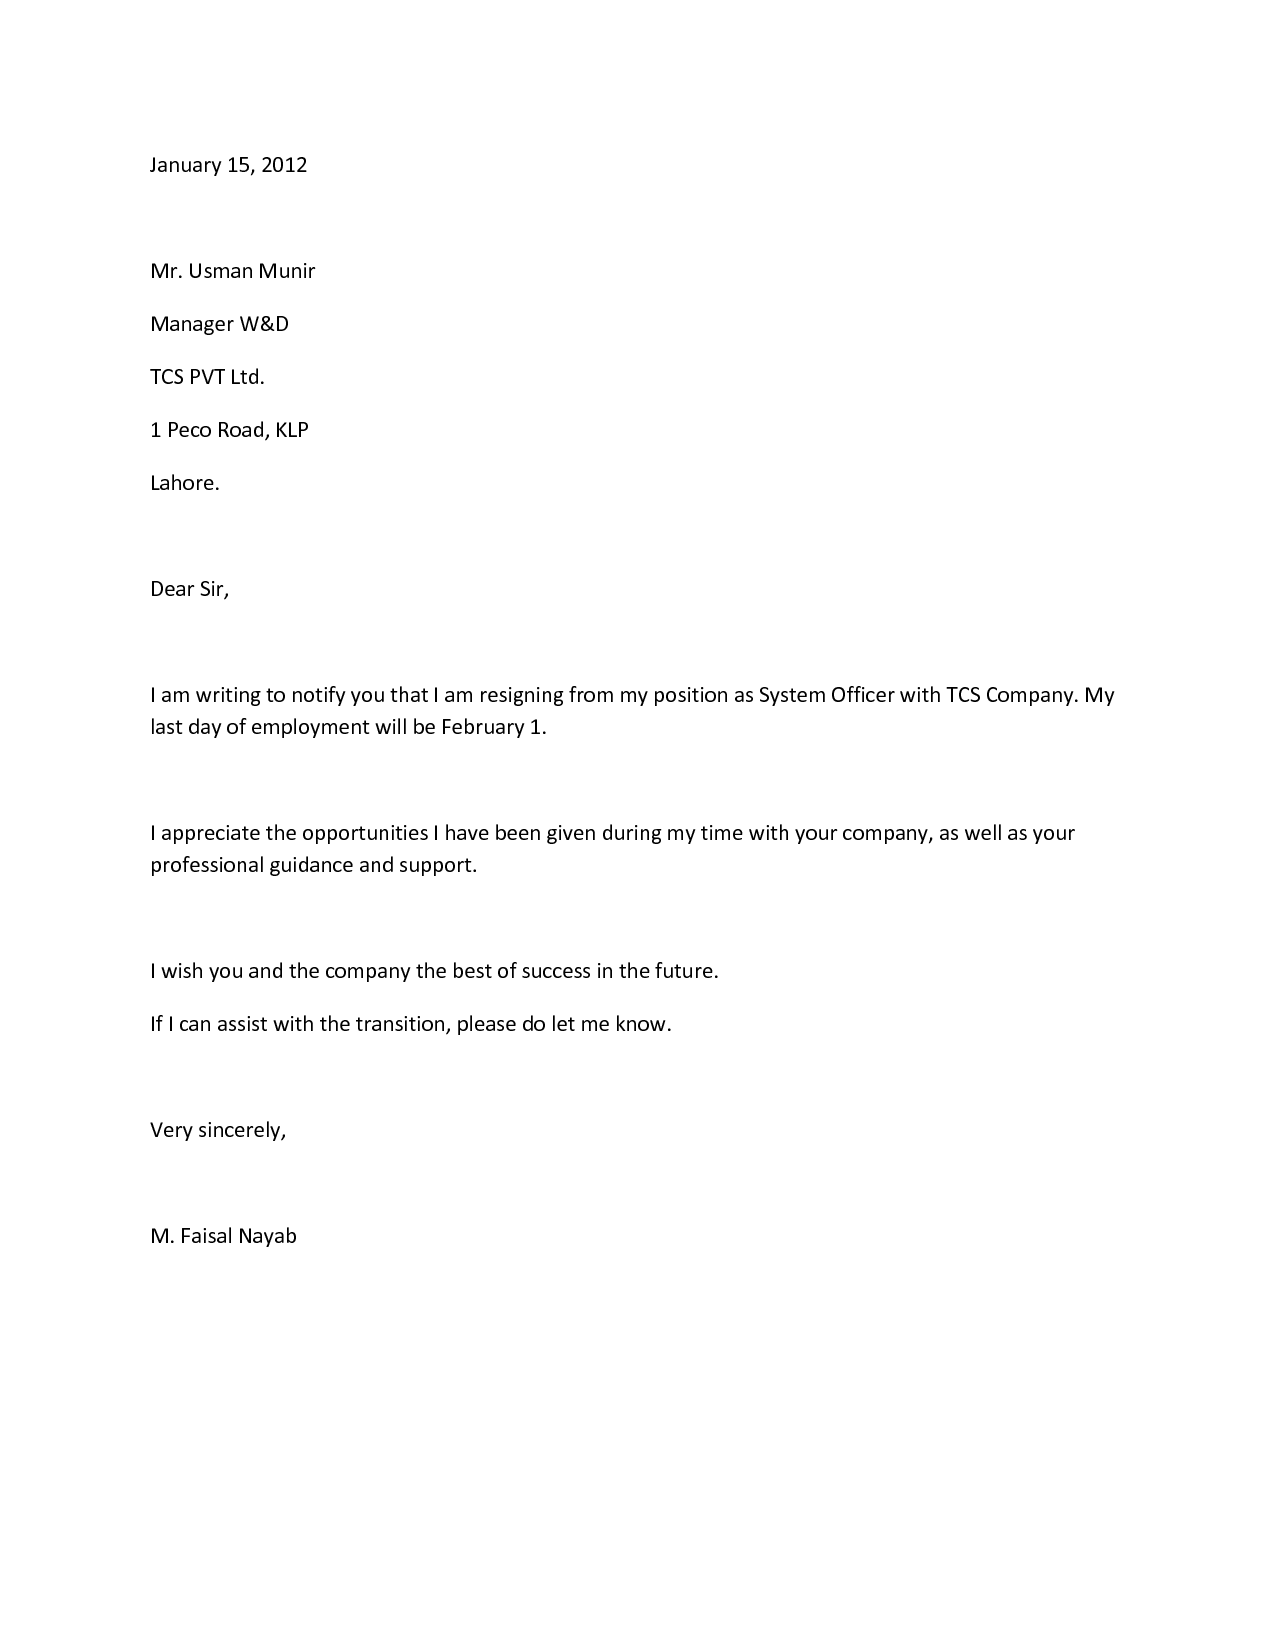 sample professional letter formats letter sample and search how to write a proper resignation letter images